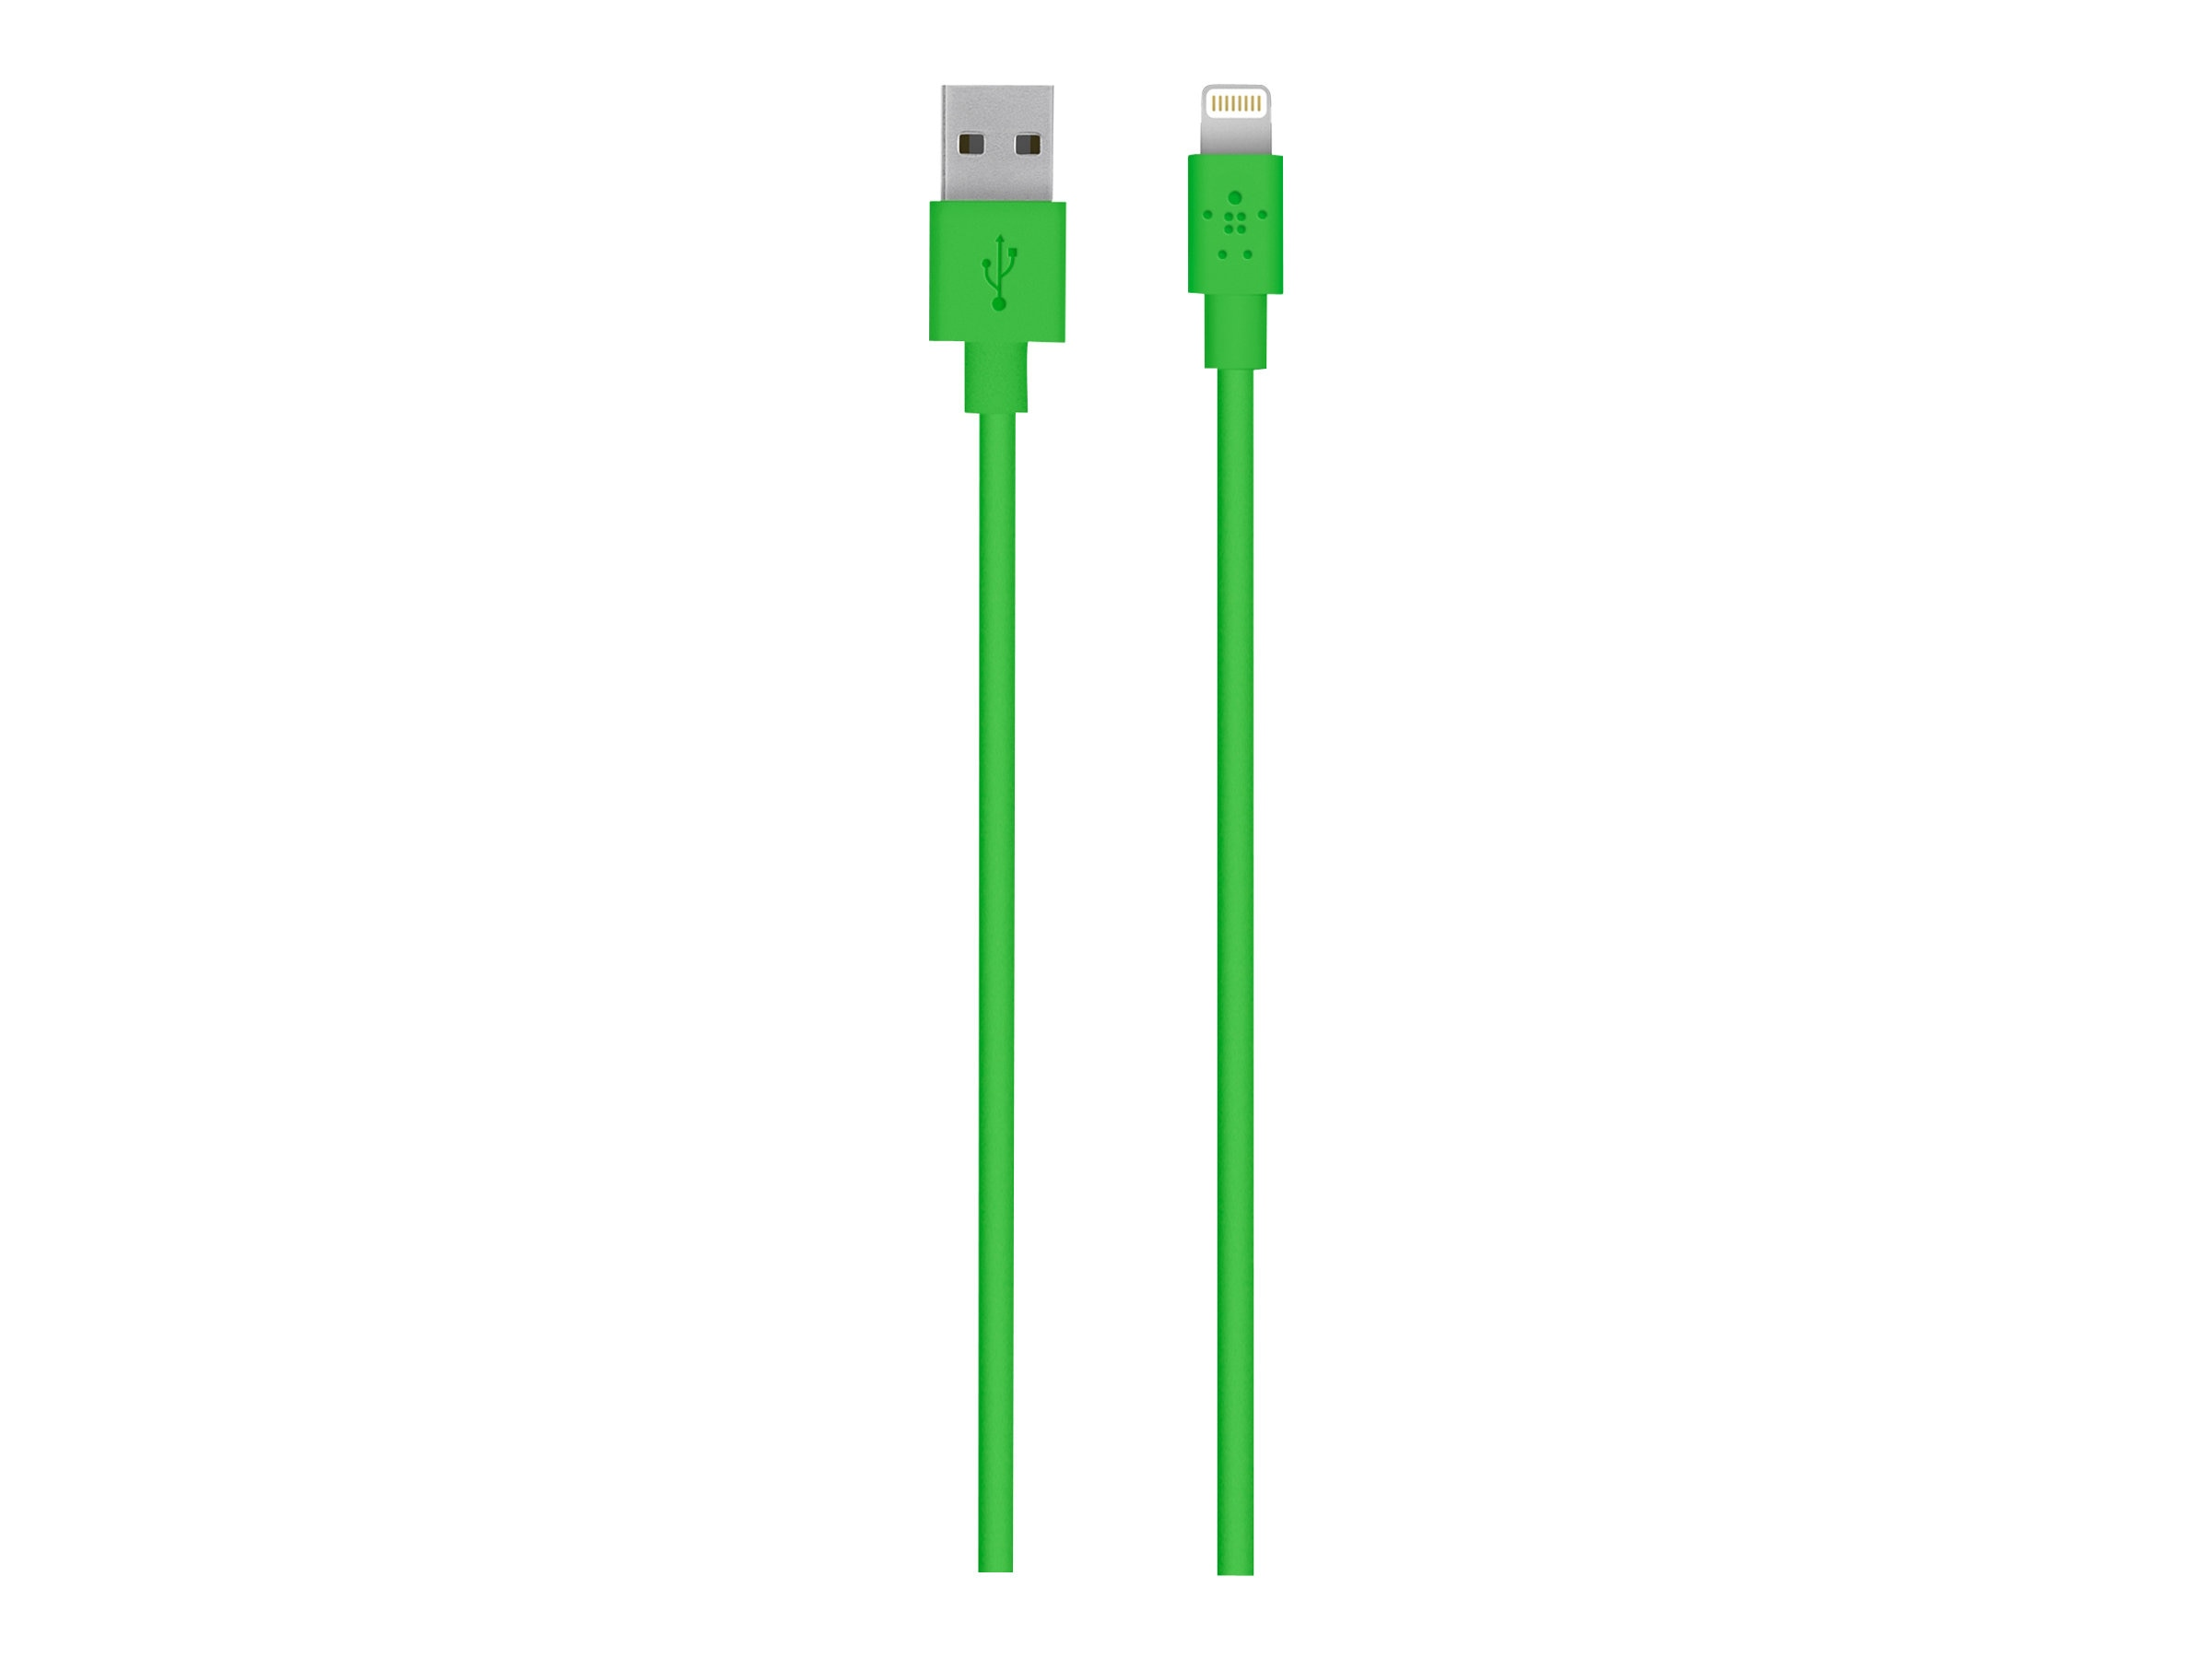 Belkin MIXIT Lightning to USB ChargeSync Cable, Green, 4ft, F8J023BT04-GRN, 16172211, Cables